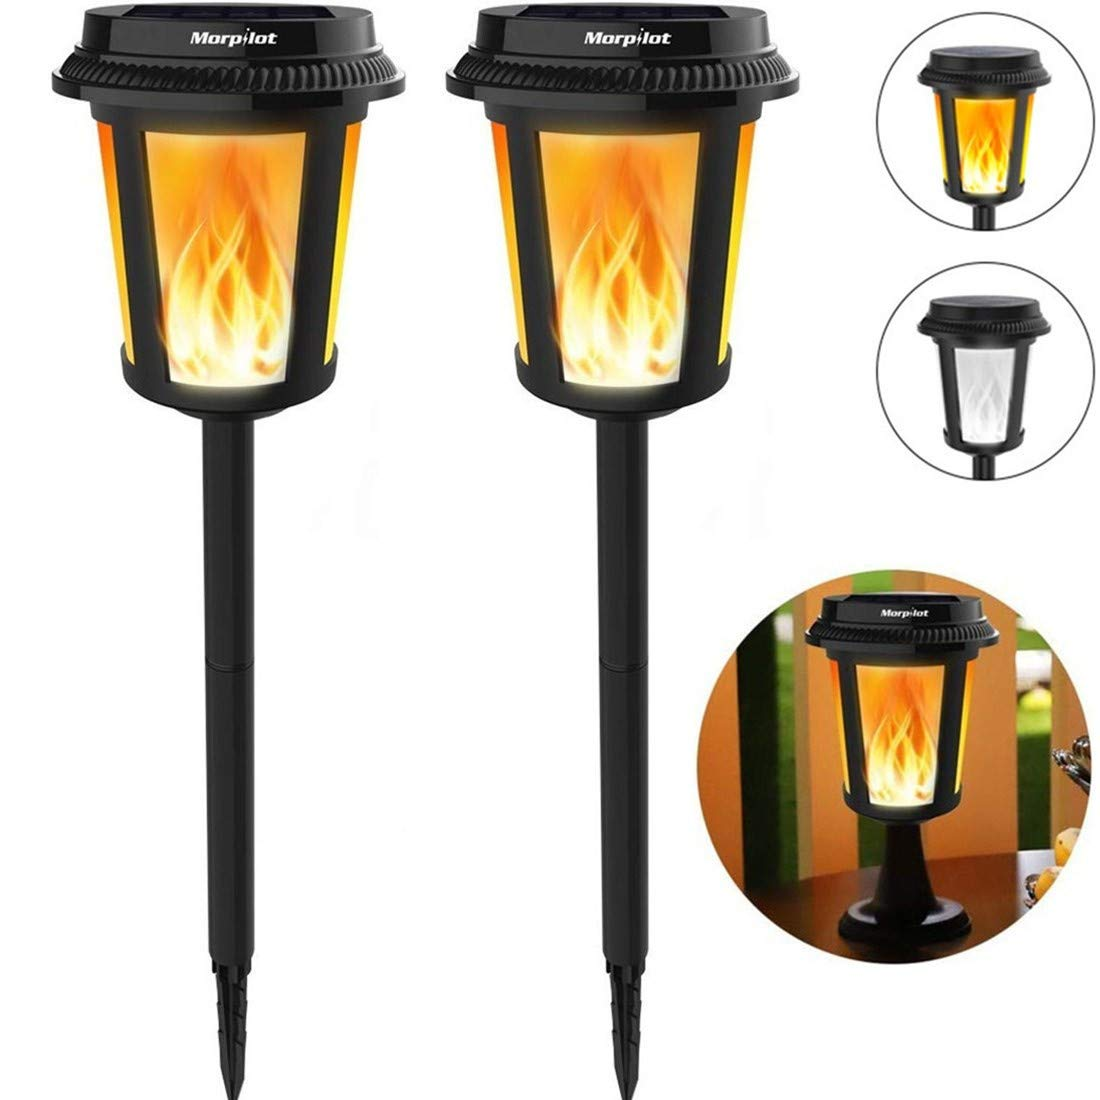 Keenstone 2 in 1 LED Solar Flame Lights/Solar Torches Lights/Flame Torches, White Light & Flame Light, 4 Lighting Effects/IP65 Waterproof/Lighting Dusk to Dawn Auto On/Off/Battery Life Up to 5 Years